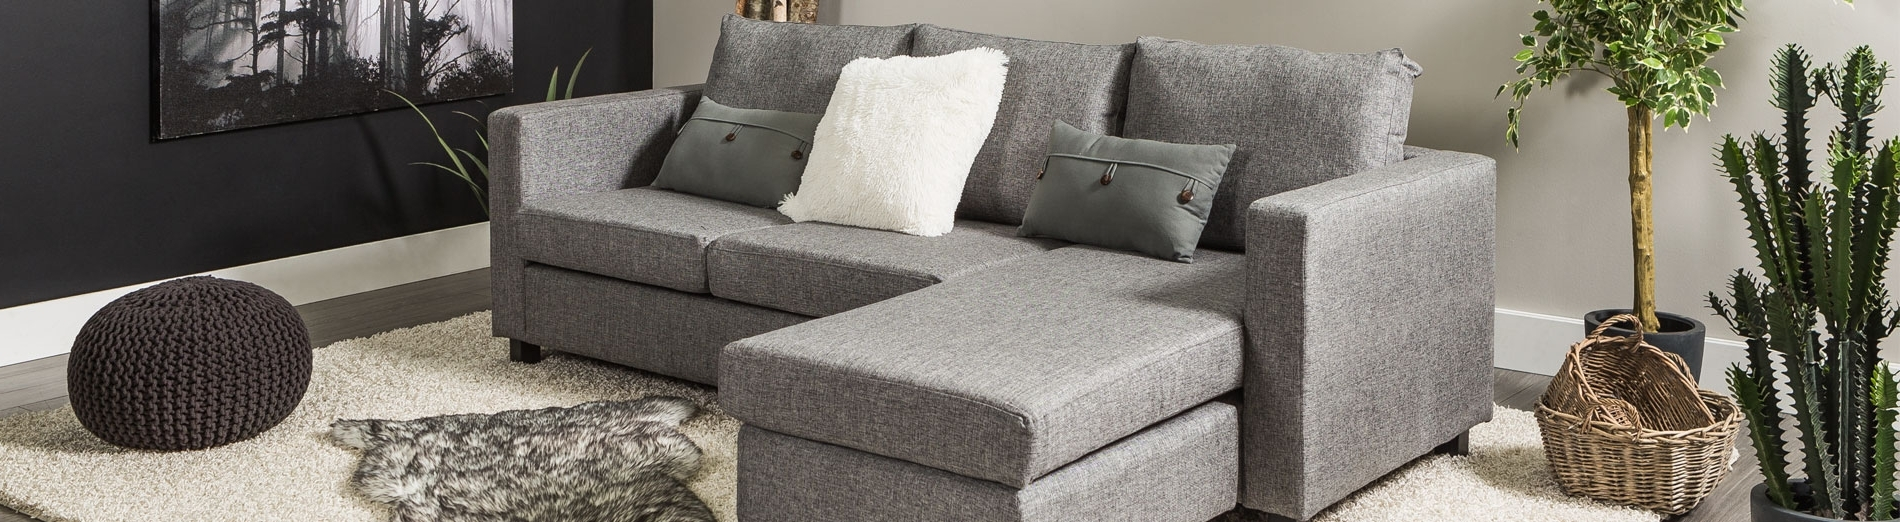 Furniture With Regard To Jysk Sectional Sofas (View 5 of 20)